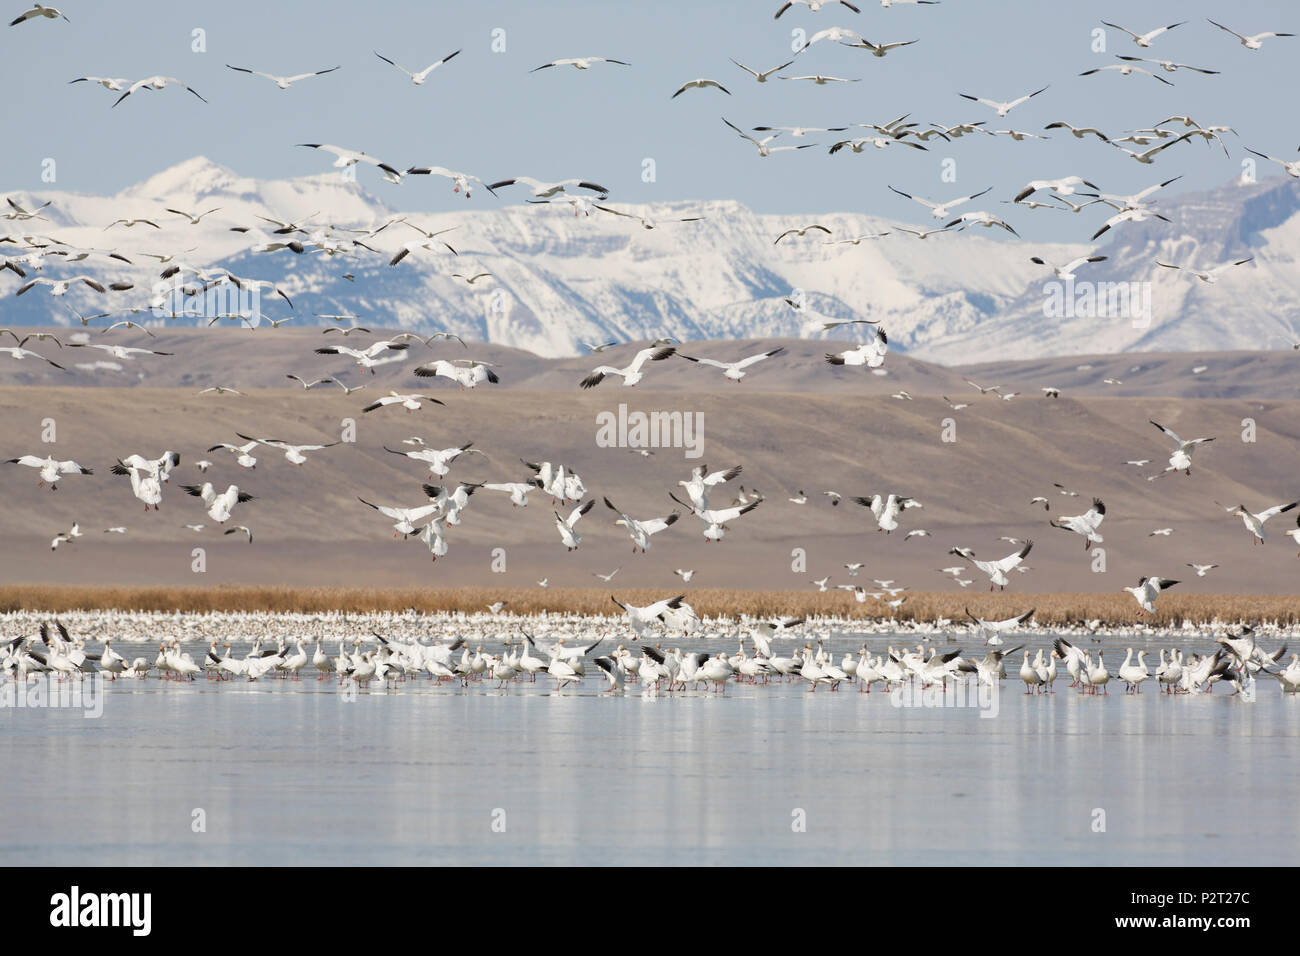 Snowy peaks of Rockies beyond flying snow geese. Migration stopover is near barley fields providing  major food source, Freezout Lake, MT. - Stock Image